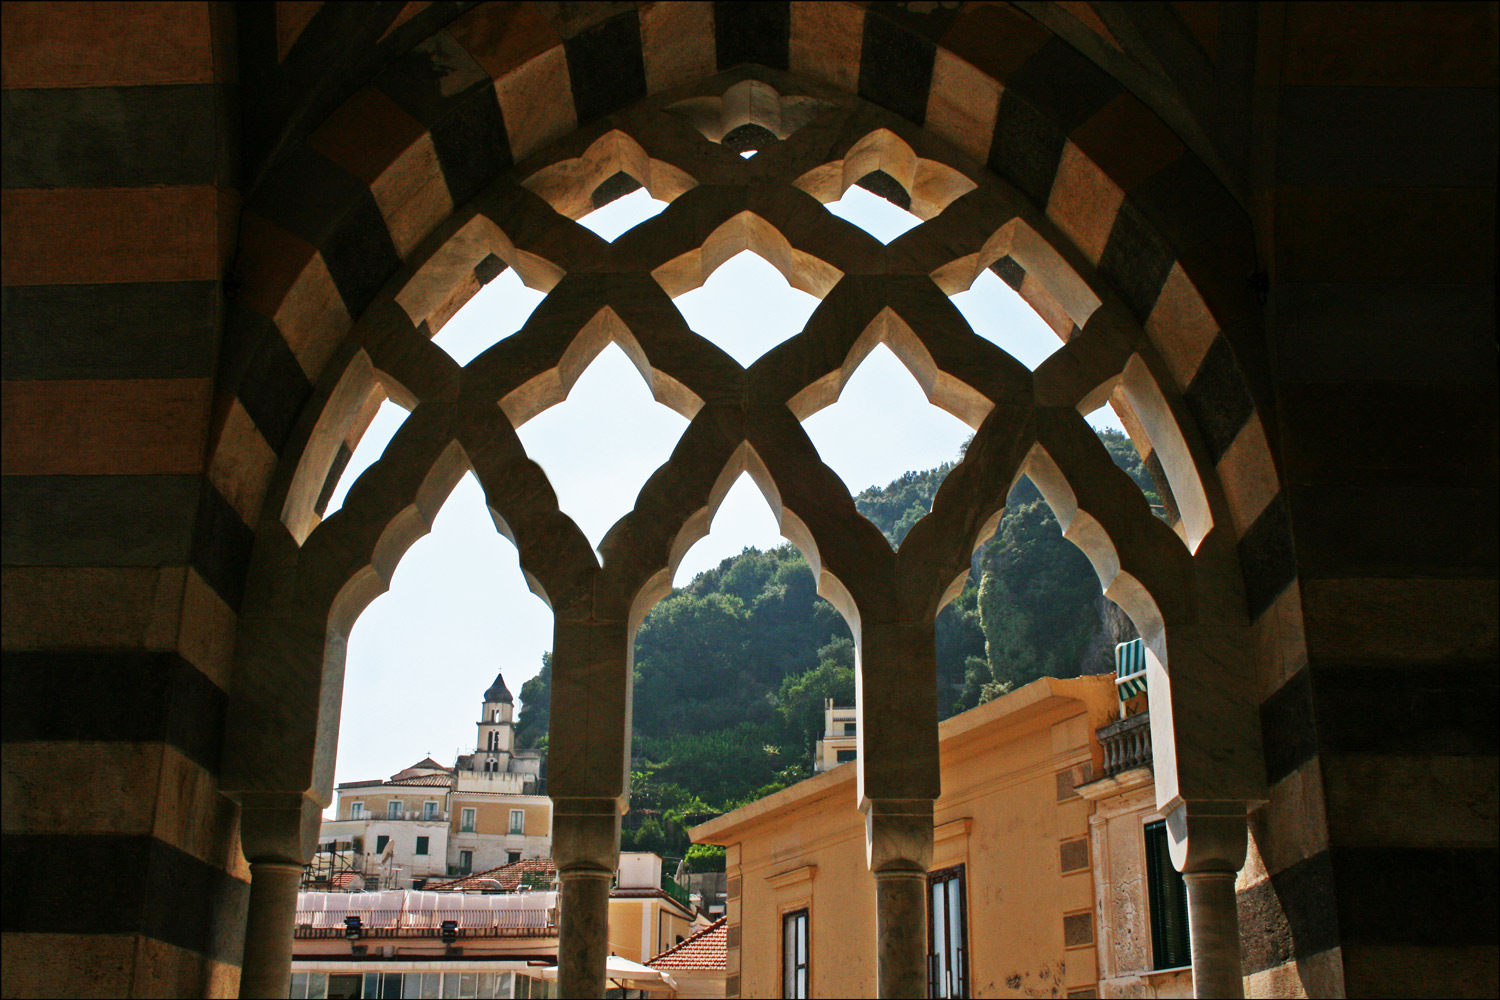 View Through the Lattice Work on the Portico